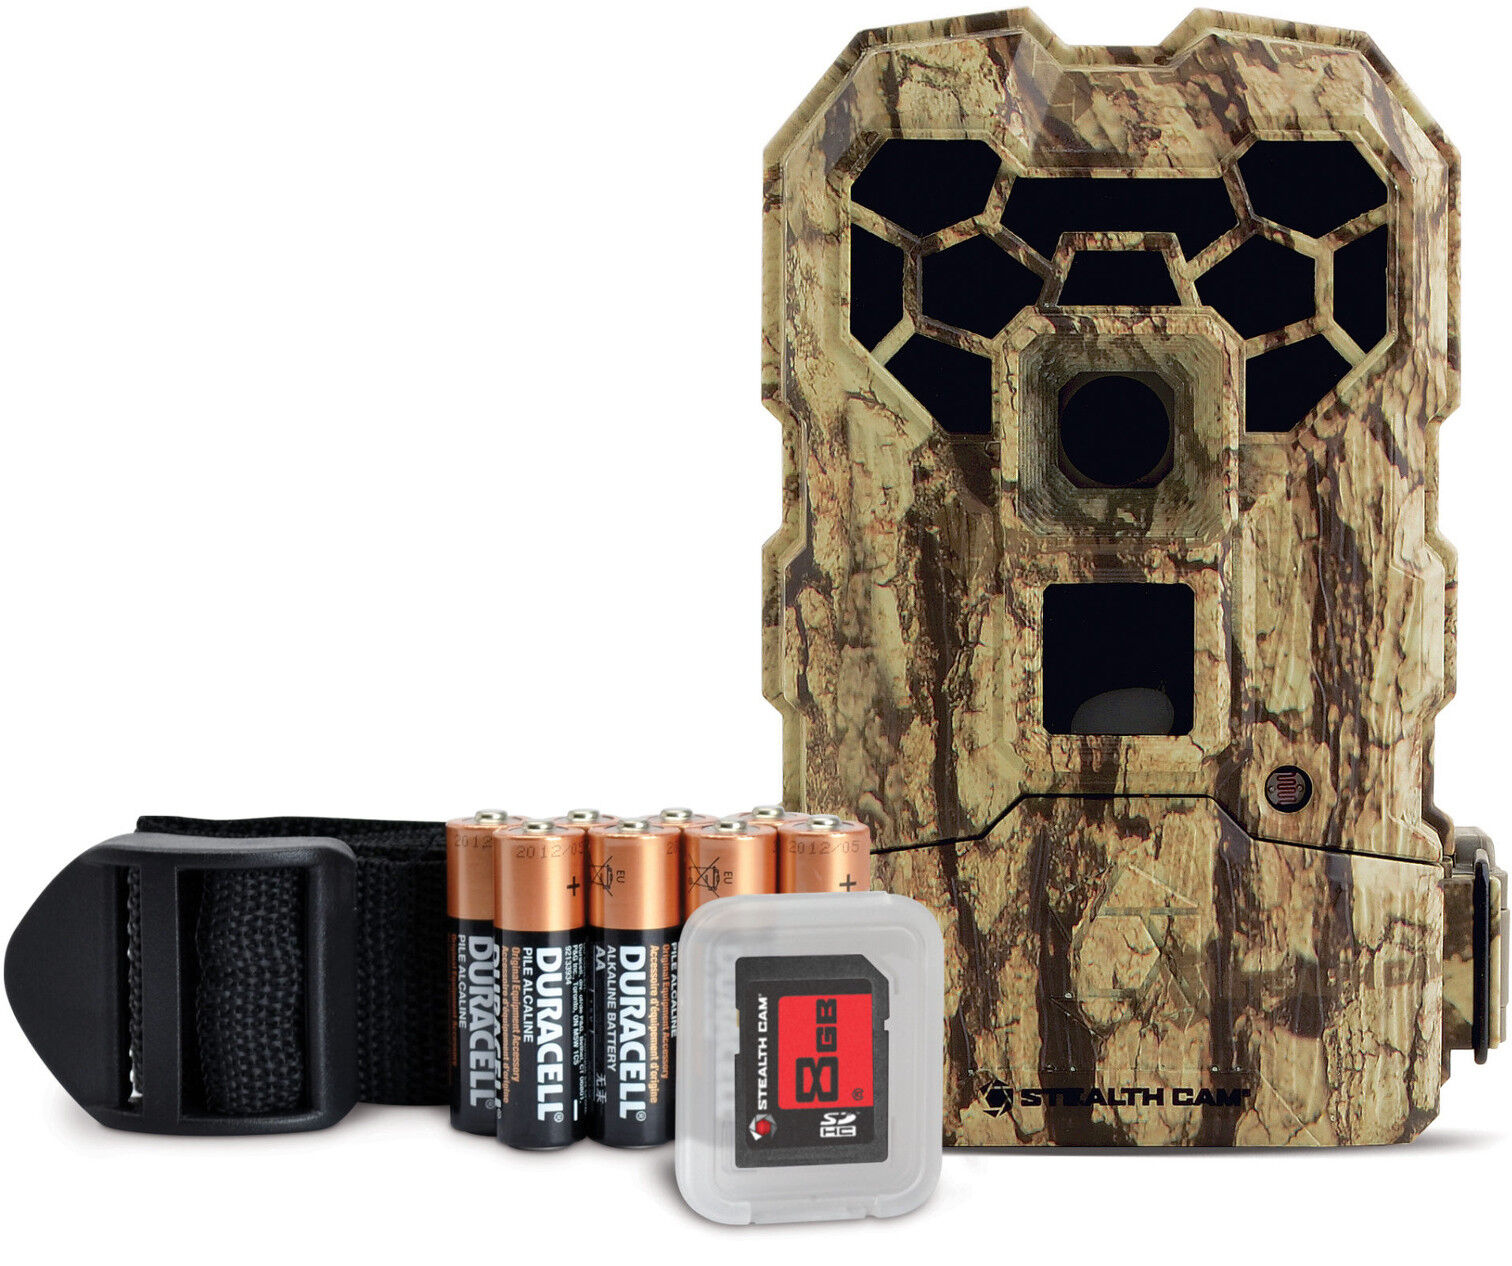 Stealth Cam QS24NGK 12MP 24IR No Glo FX Shield Cam, 8GB SD Scouting Camera